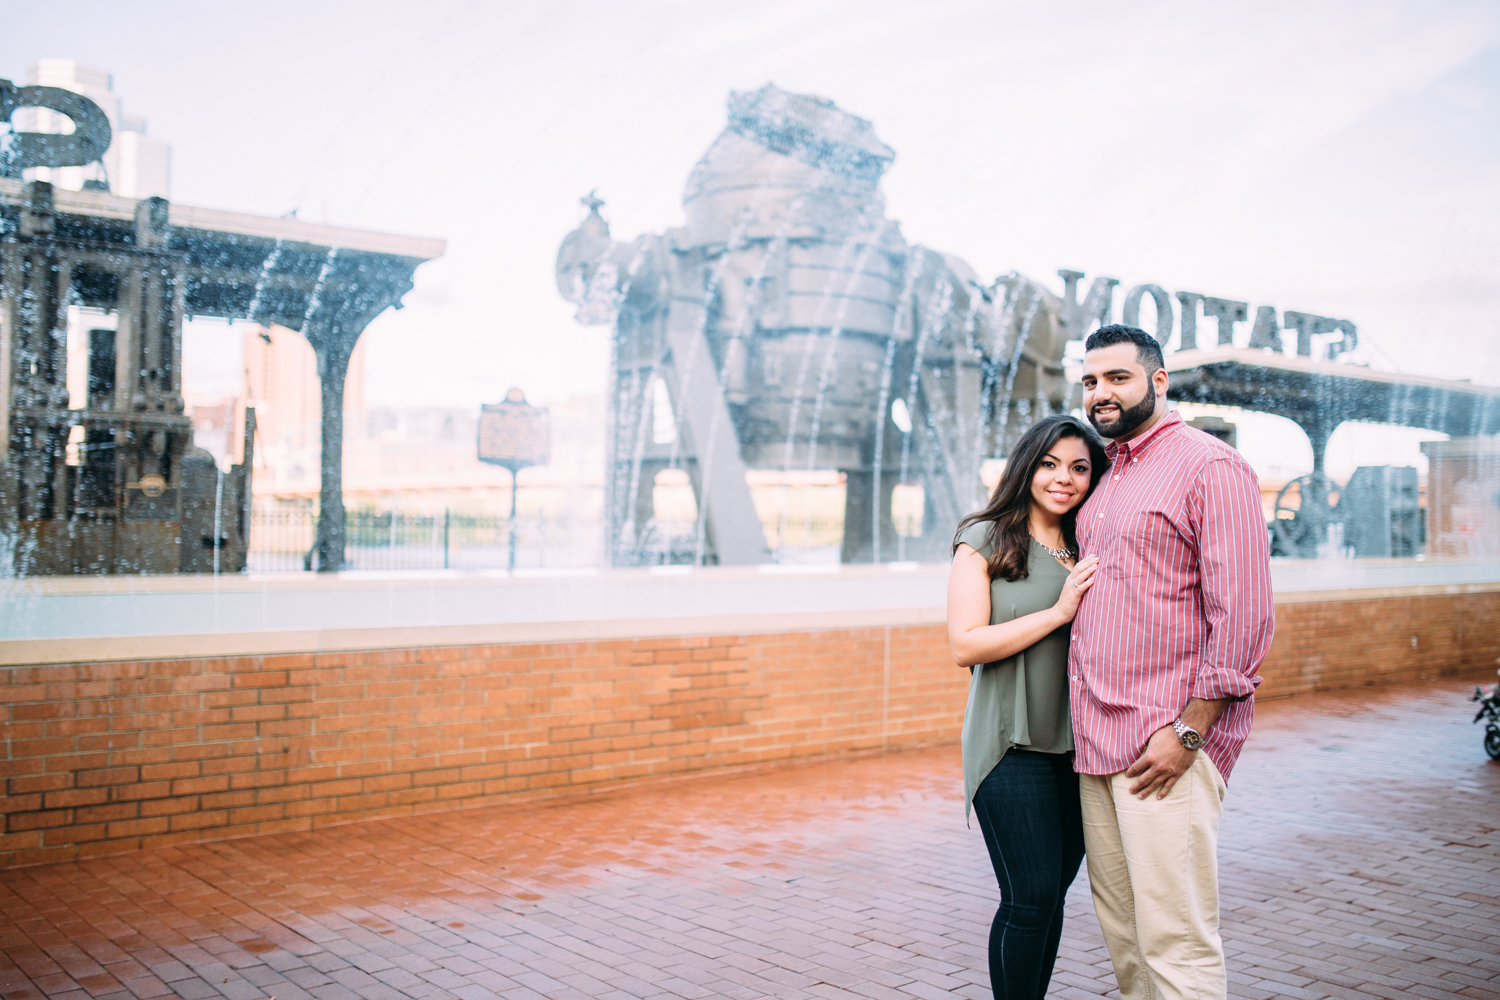 Ashley-reed-photography-pittsburgh-engagement-engagementphotography-engagementphotographer-stationsquare-statio-square-pittsburghengagementphotography-12.jpg